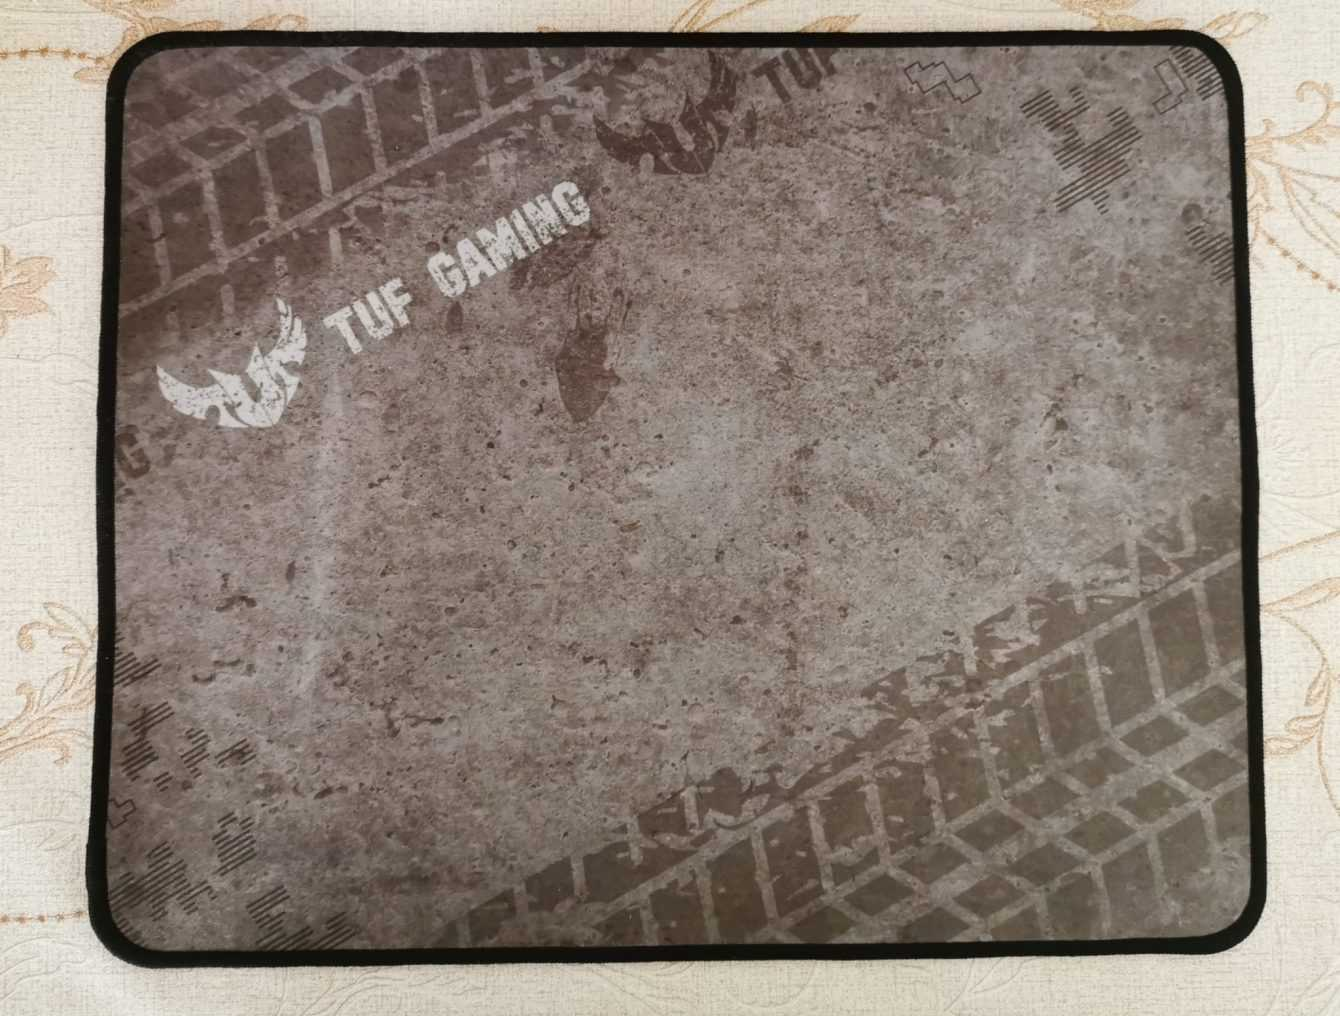 ASUS TUF Gaming M3 and TUF Gaming P3 review: mouse and mouse pad for novices